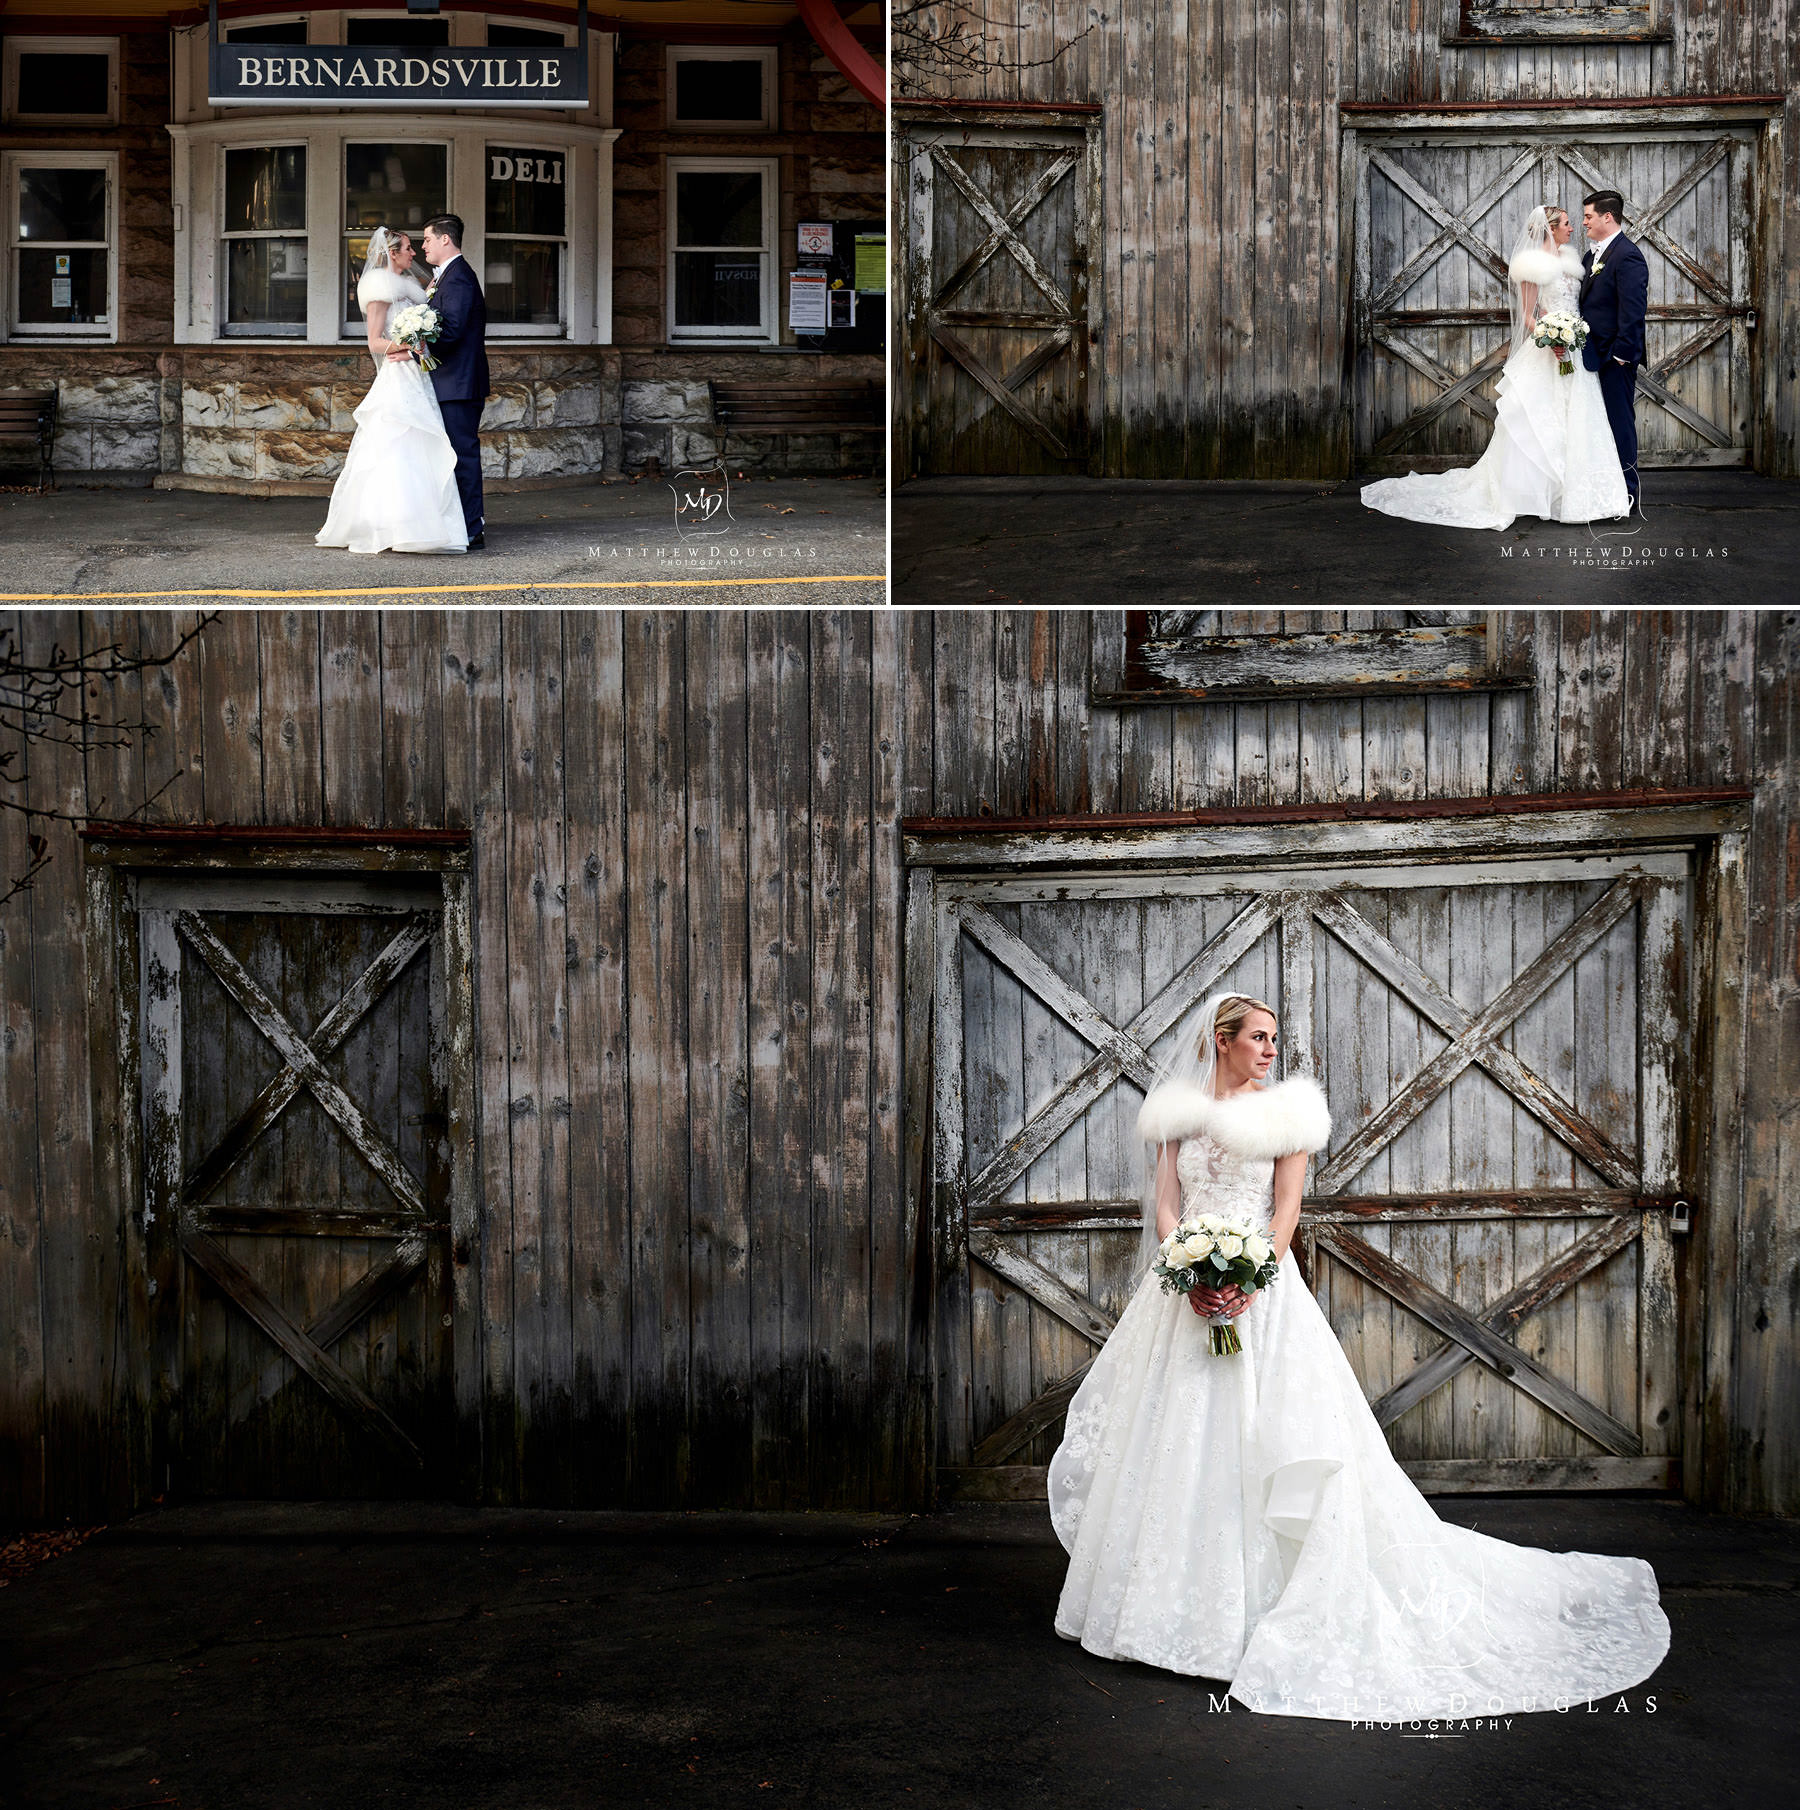 wedding photos at the bernards inn